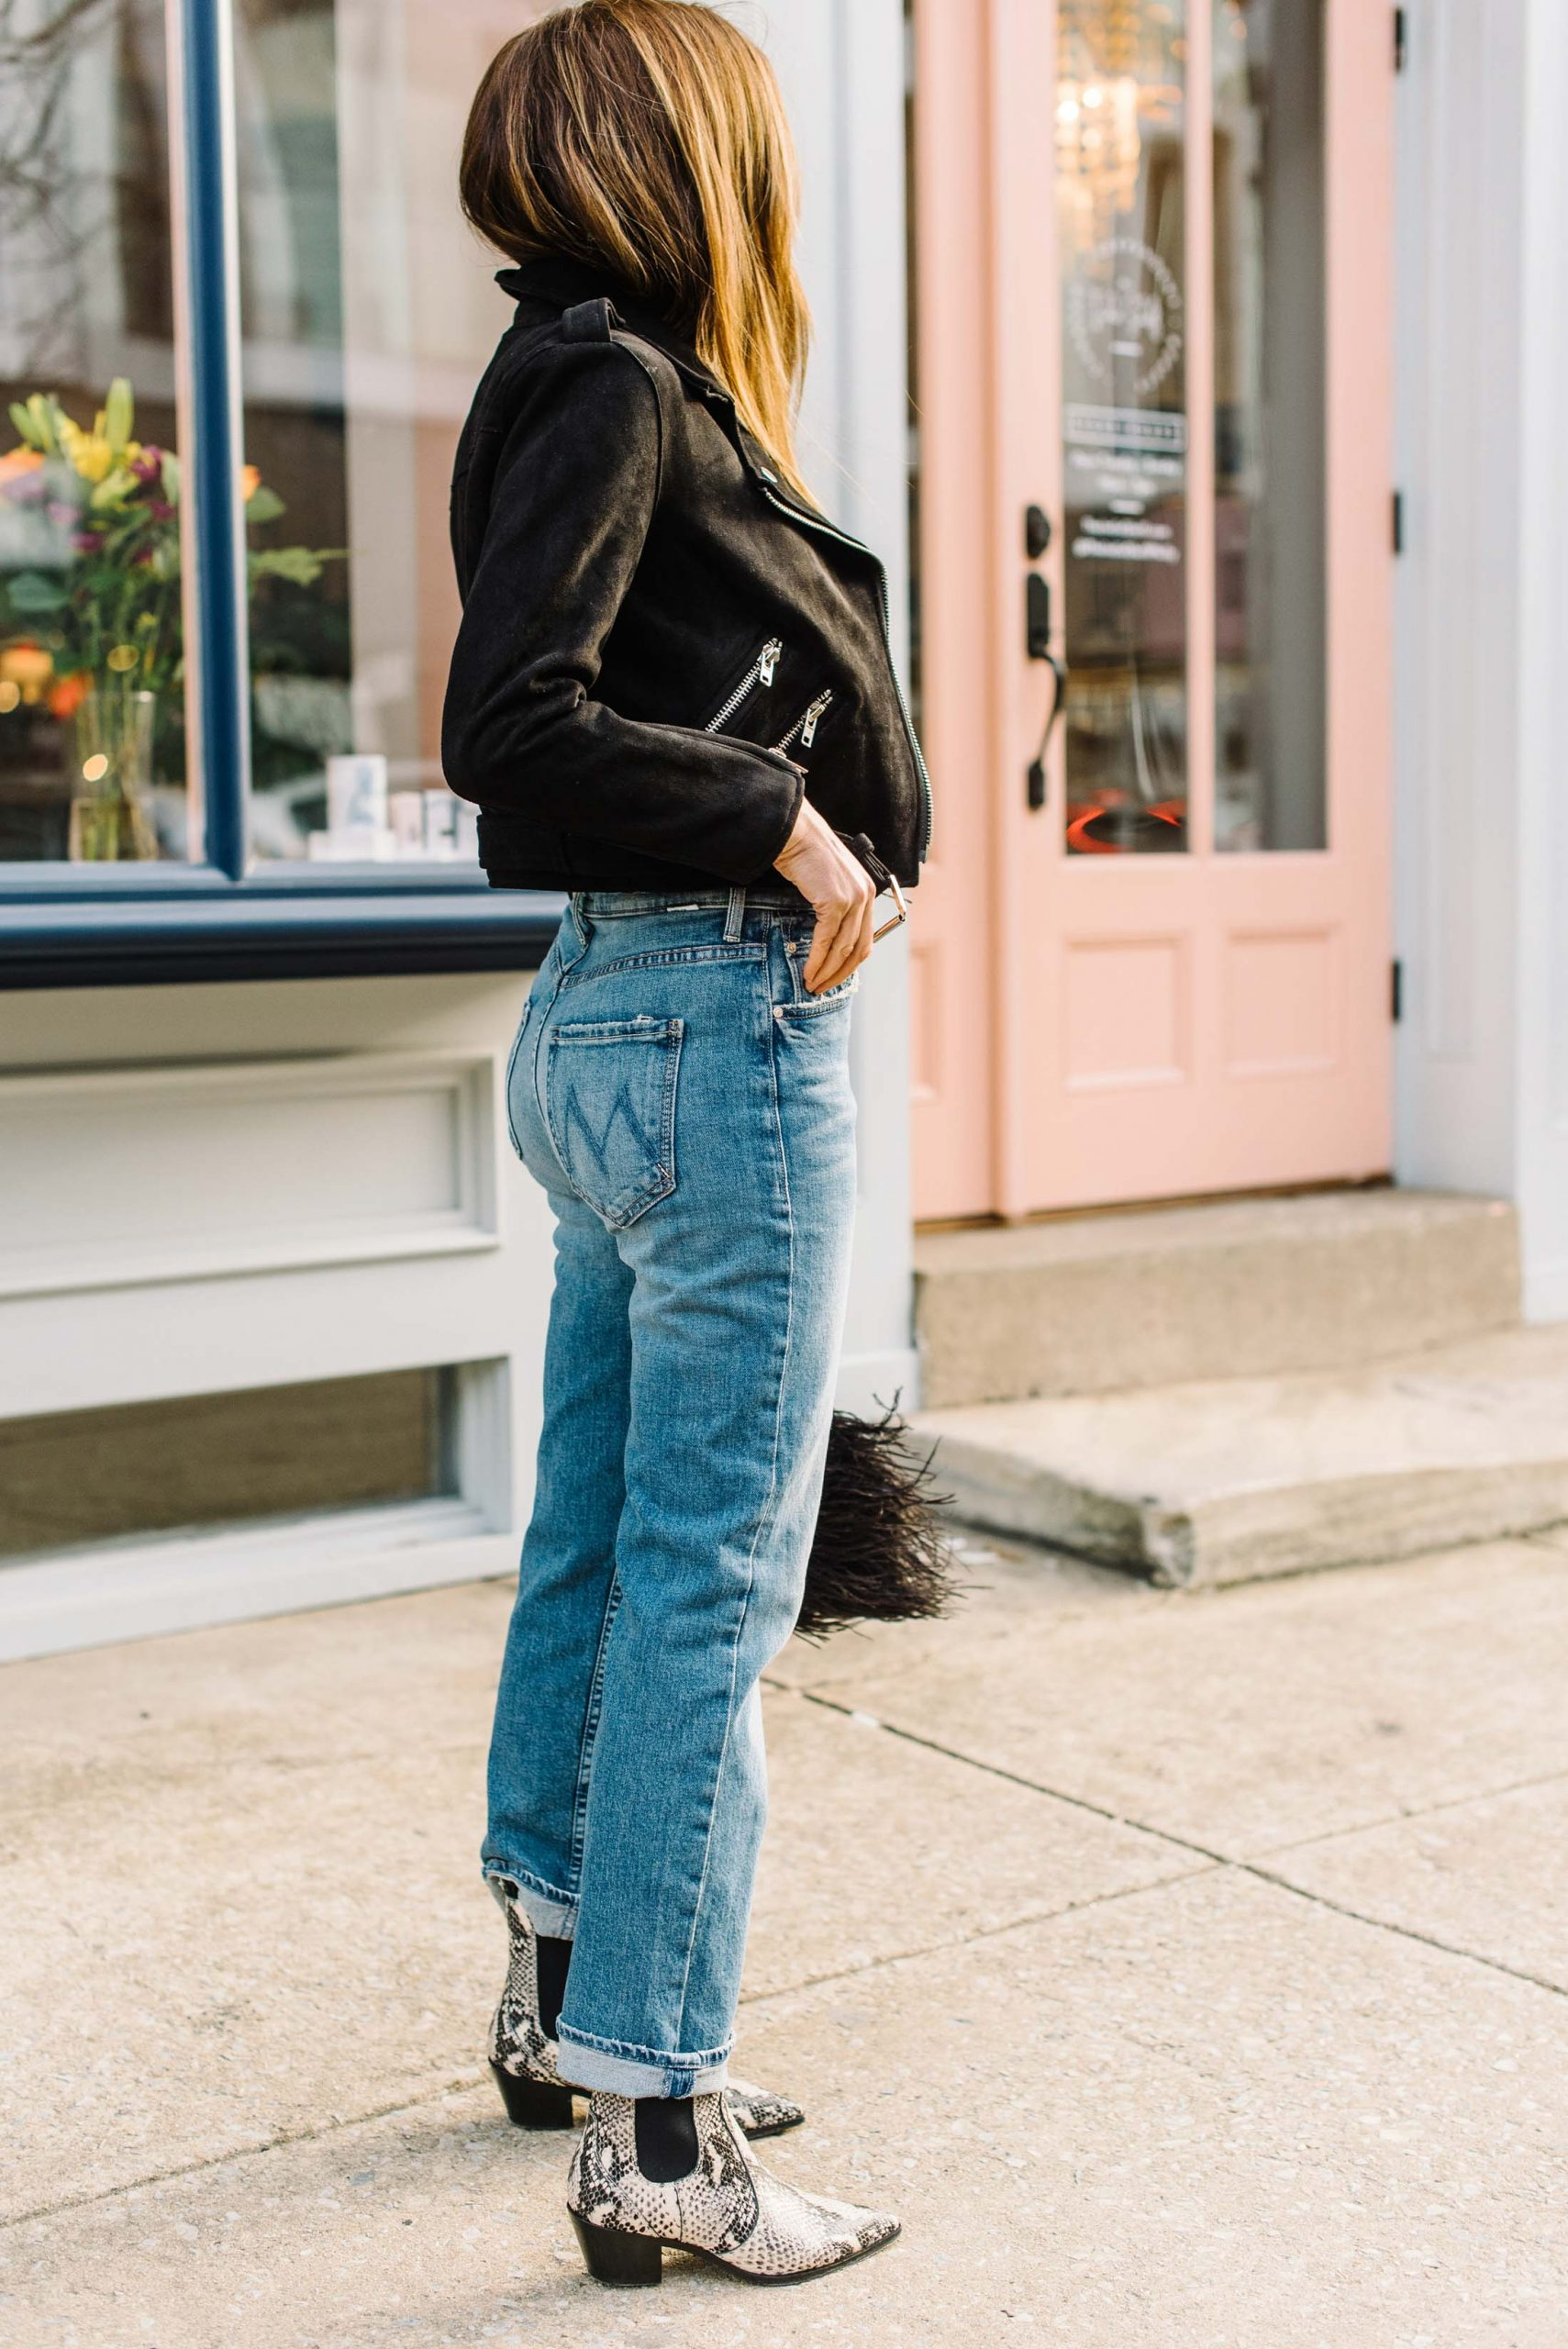 Best Boots to Wear With Cropped Jeans